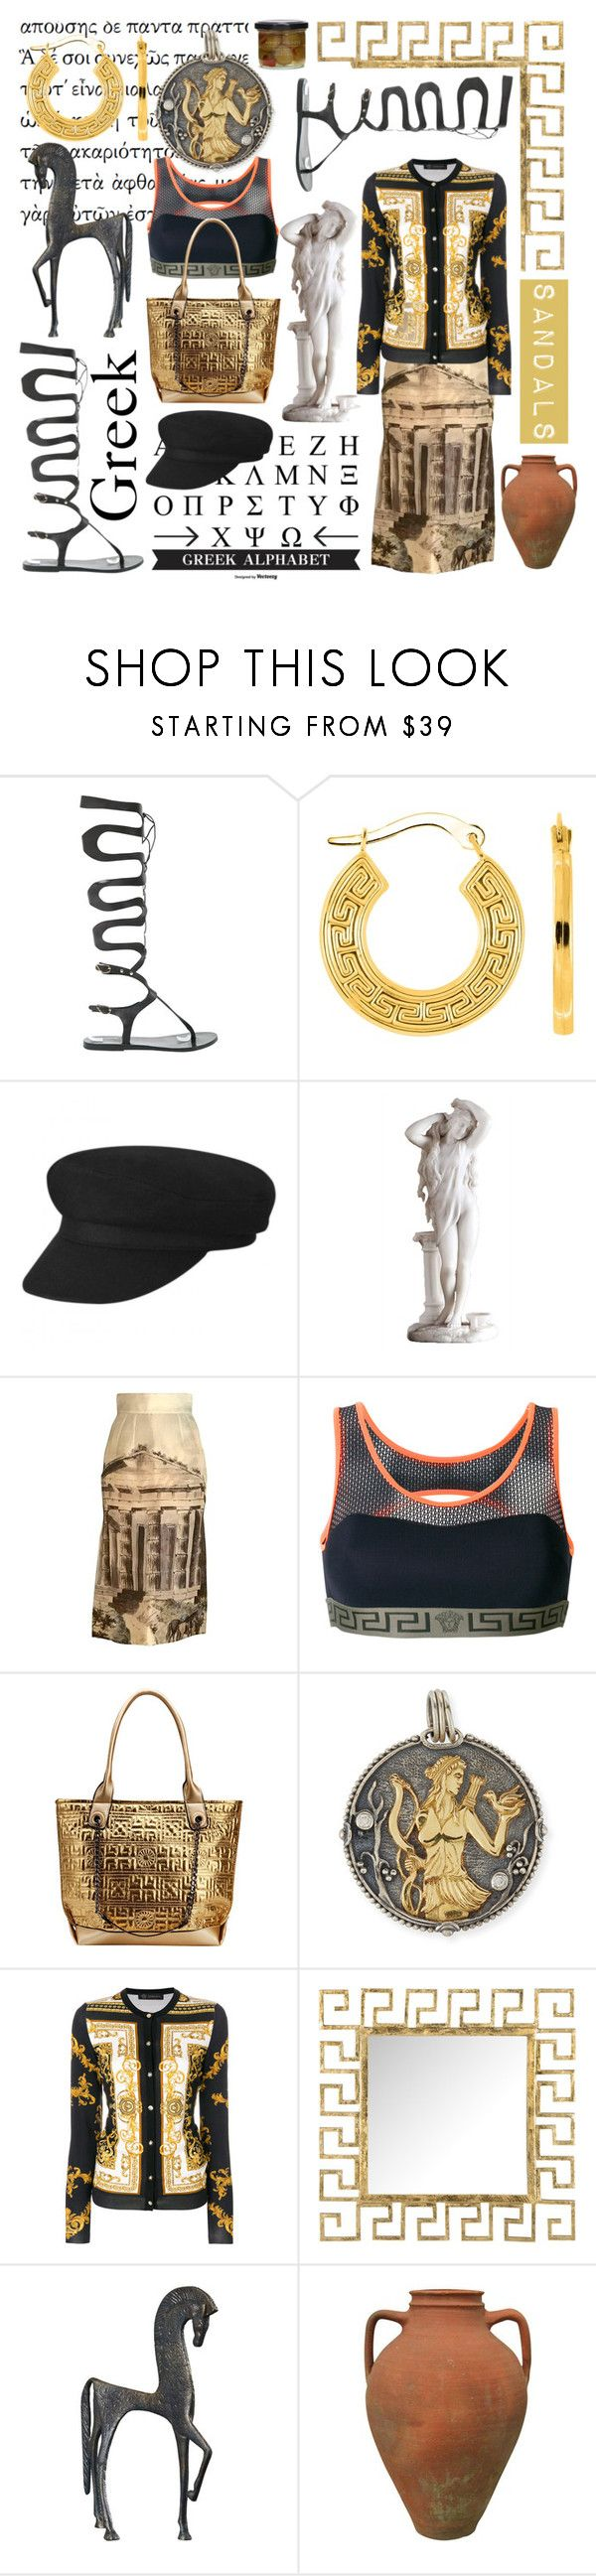 """""""Sandals Black: Greek Style"""" by cigoehring ❤ liked on Polyvore featuring Ancient Greek Sandals, Dolce&Gabbana, Versace, MKF Collection, Konstantino and Safavieh"""